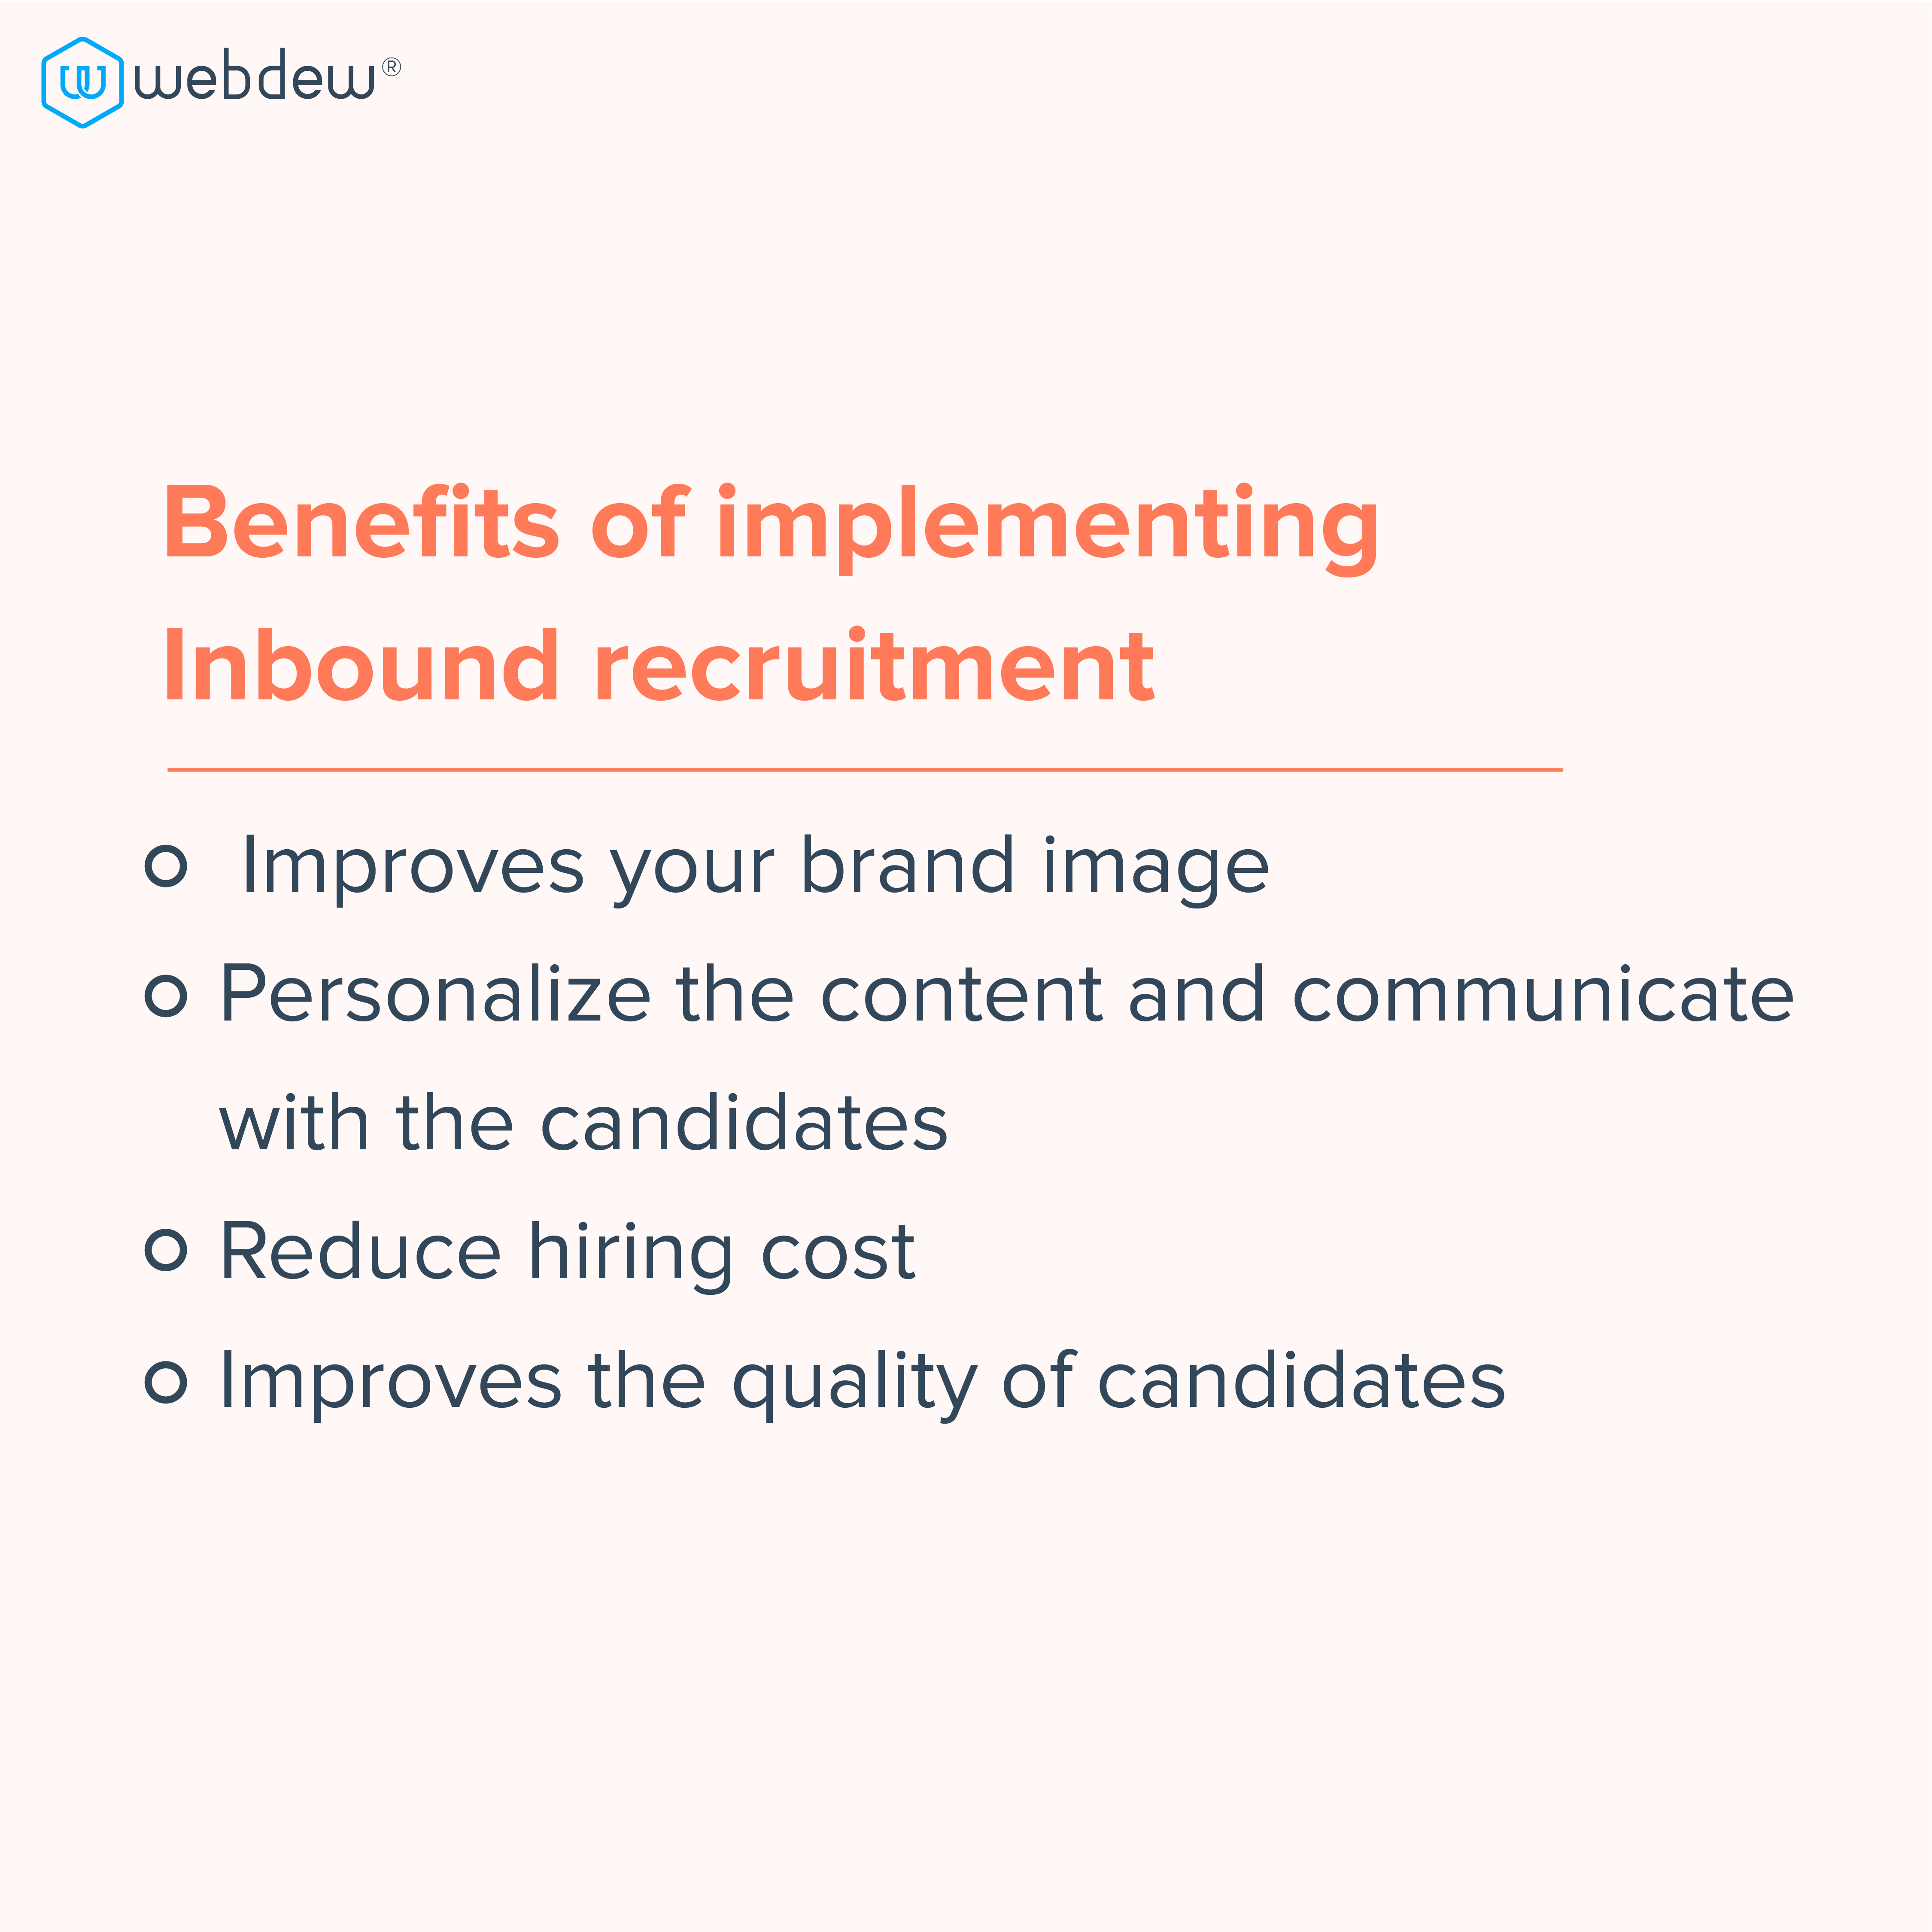 4. benefits of implementing inbound recruitment